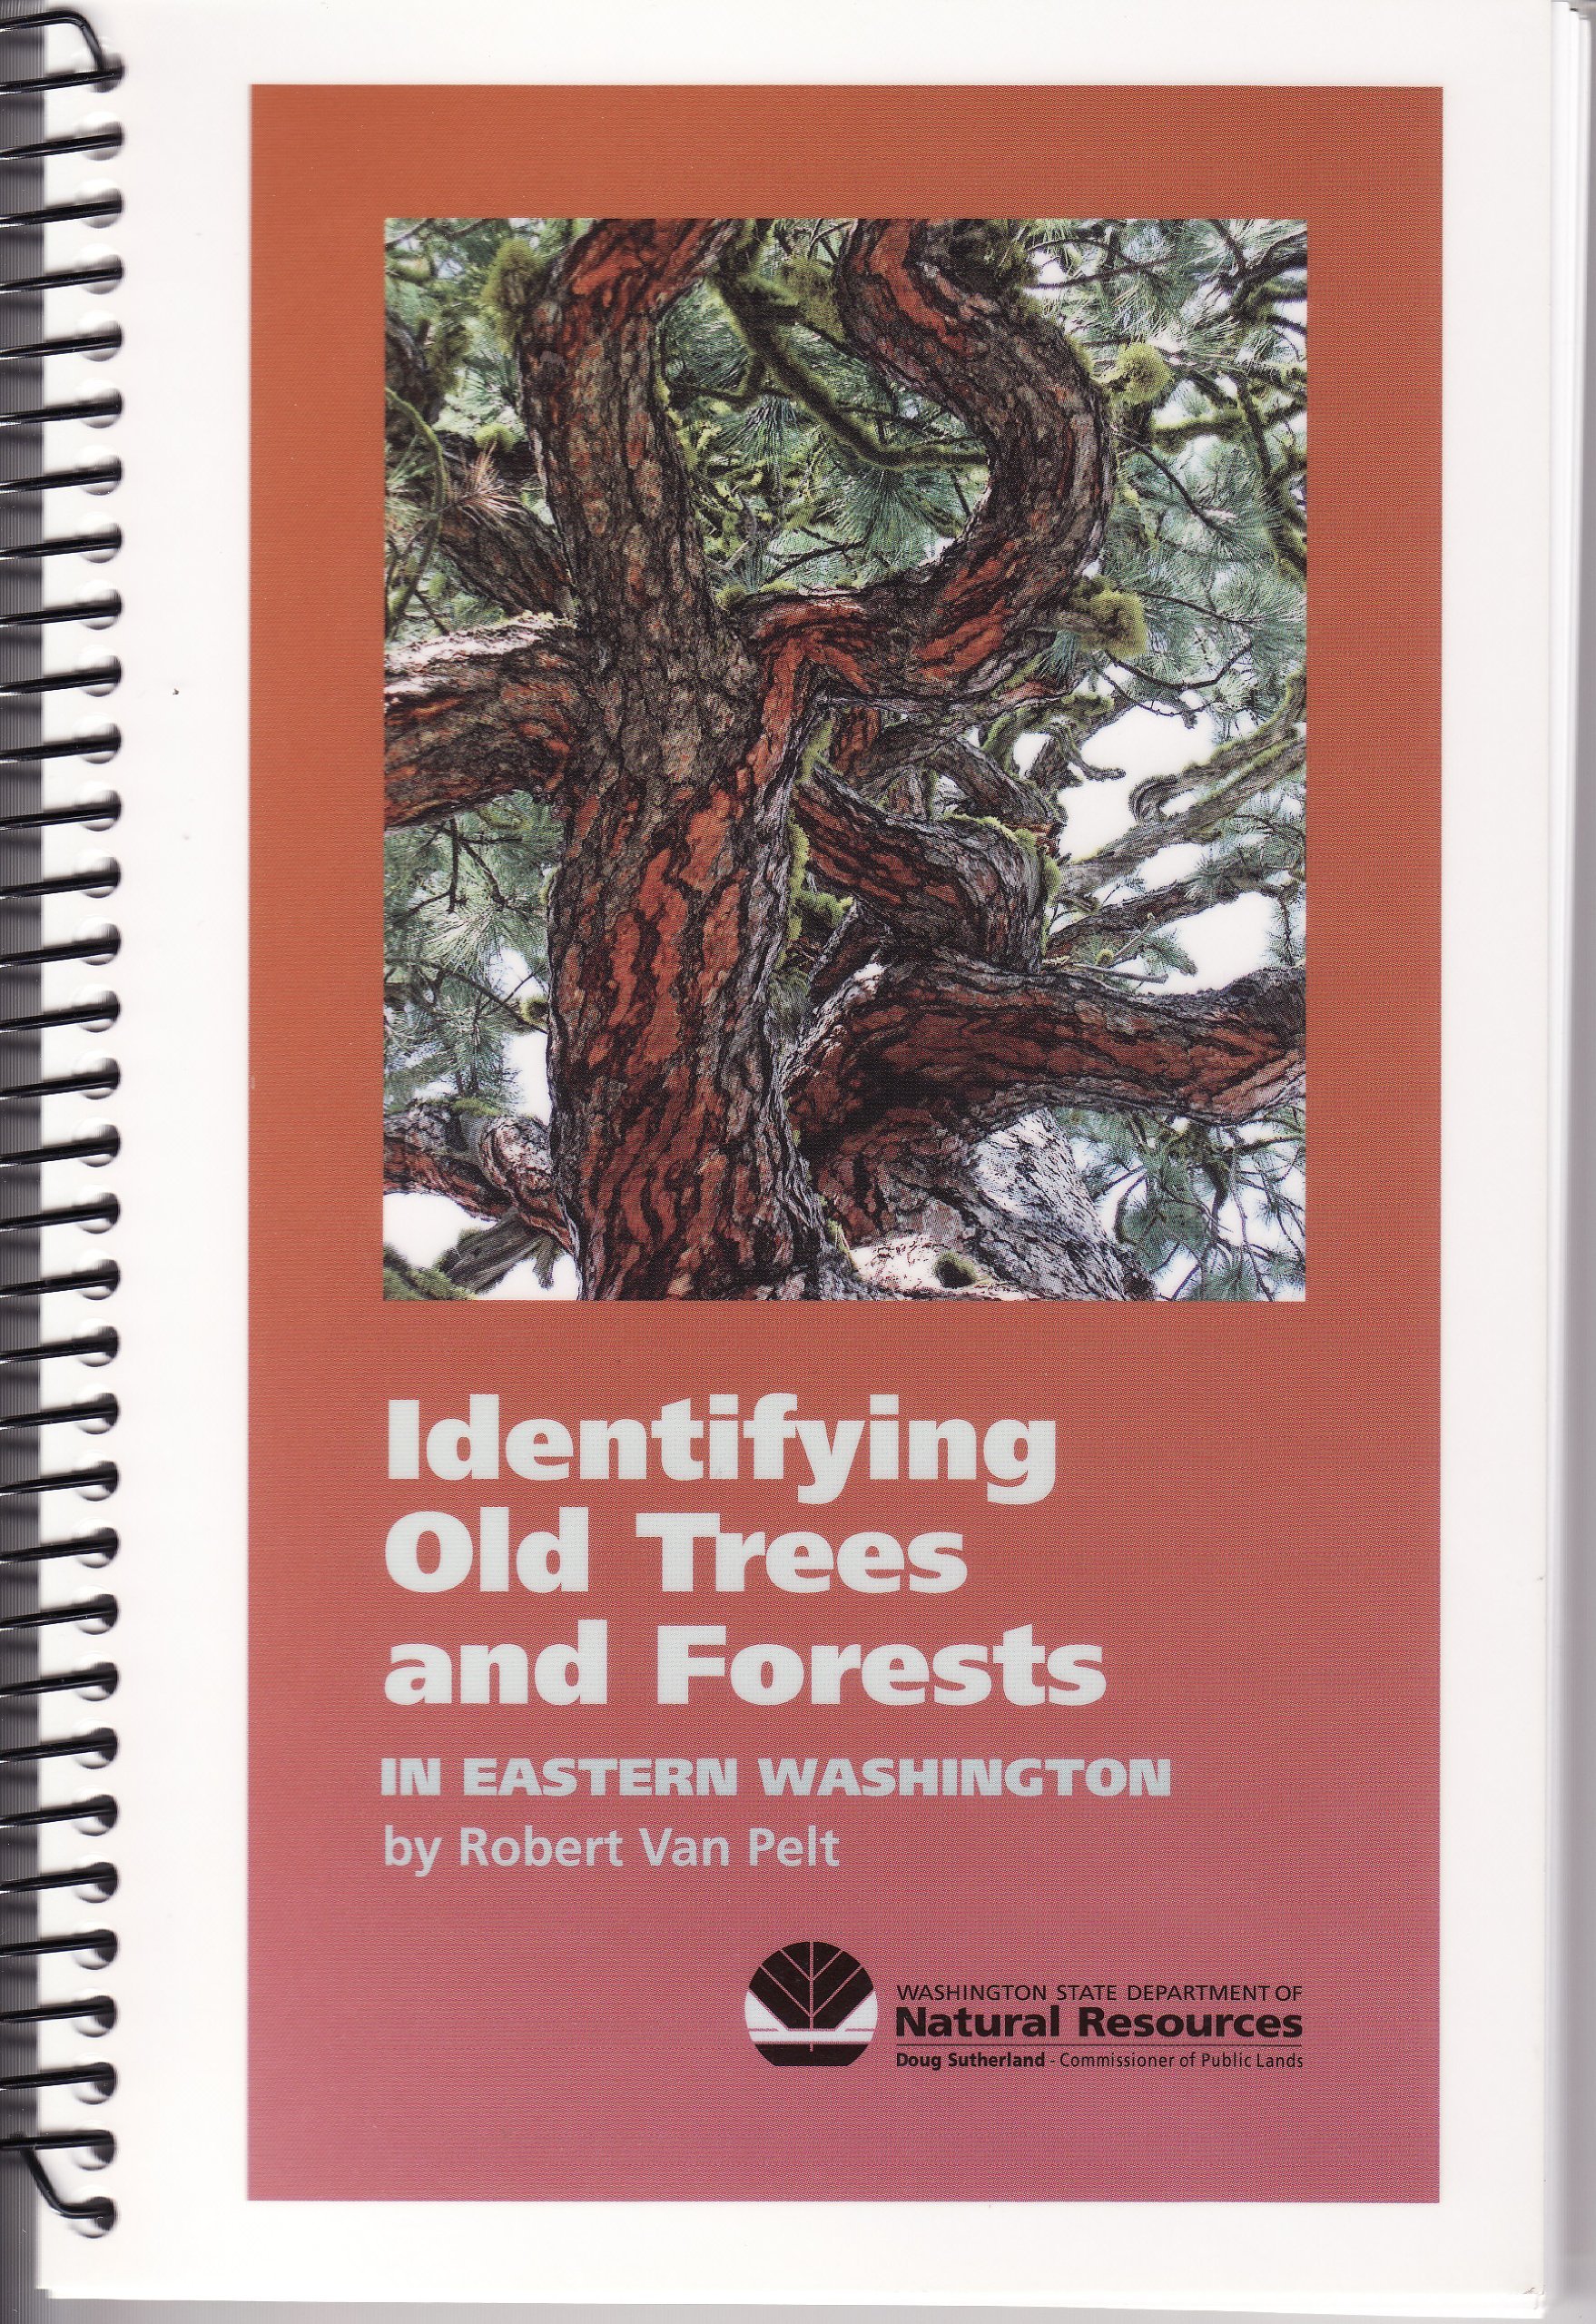 Identifying Old Trees and Forests in Eastern Washington, Robert Van Pelt